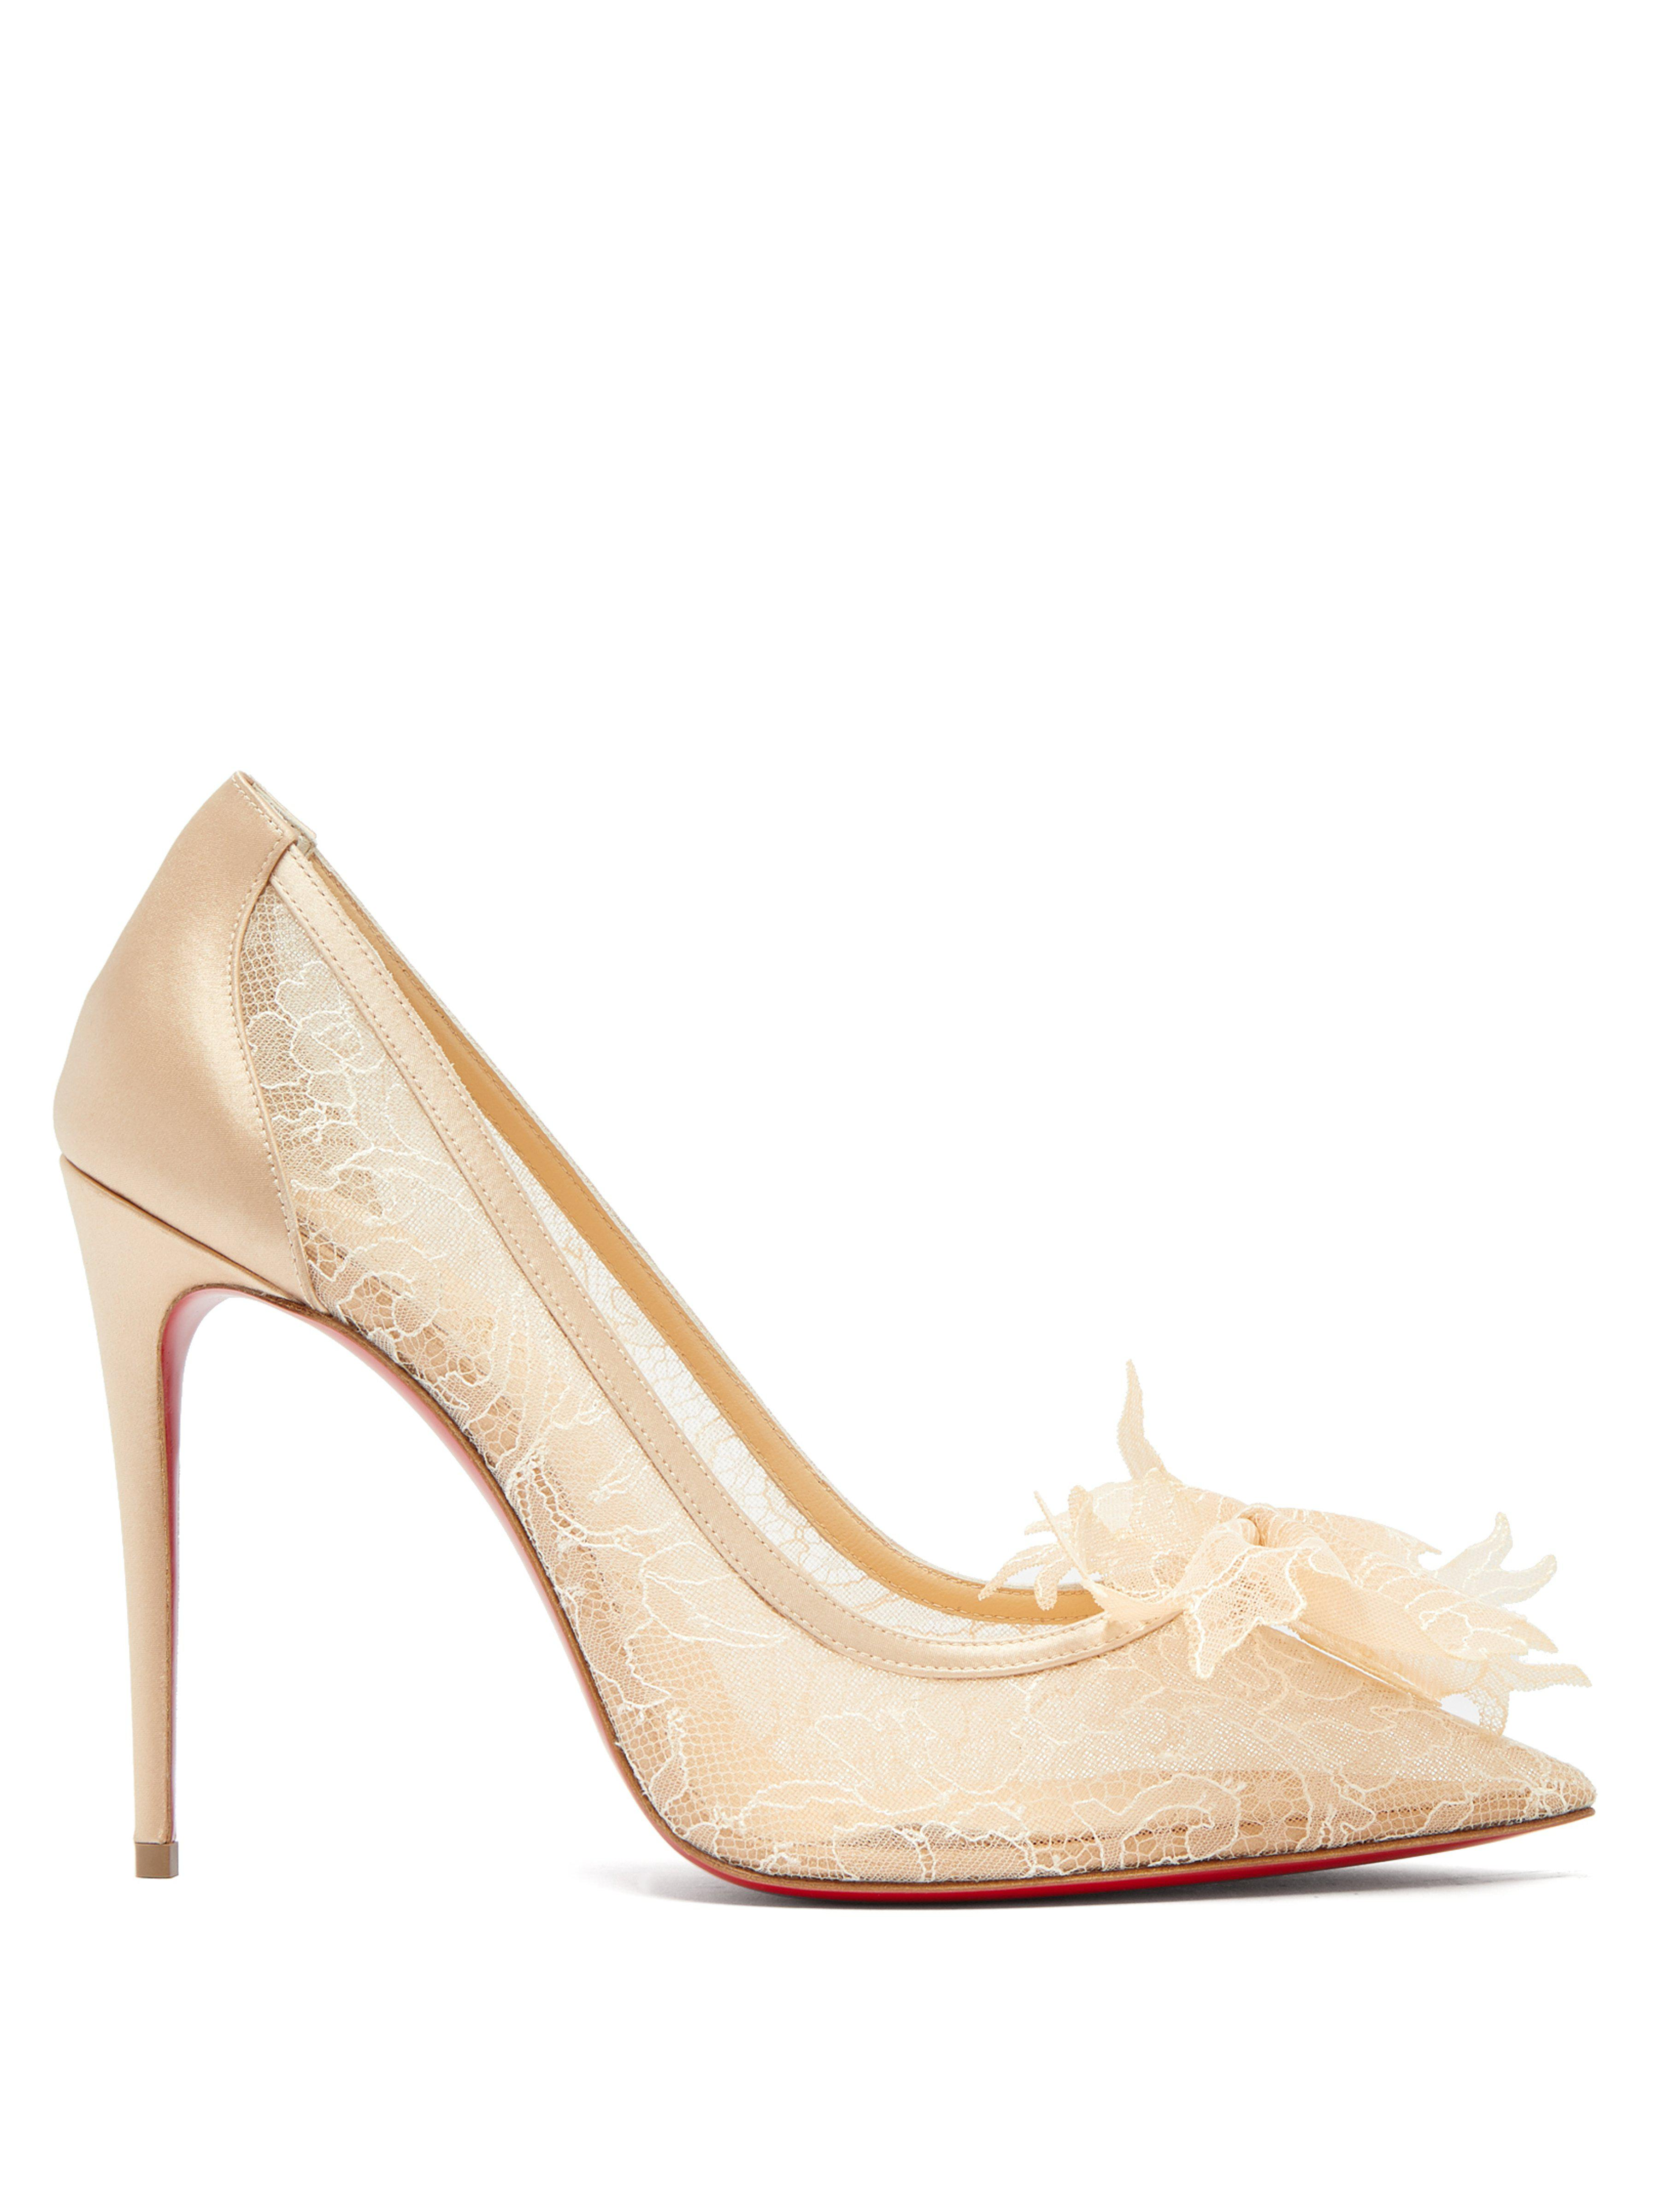 0a925aa4a3ad Christian Louboutin. Women s Natural Delicatissima 100 Lace Court Shoes